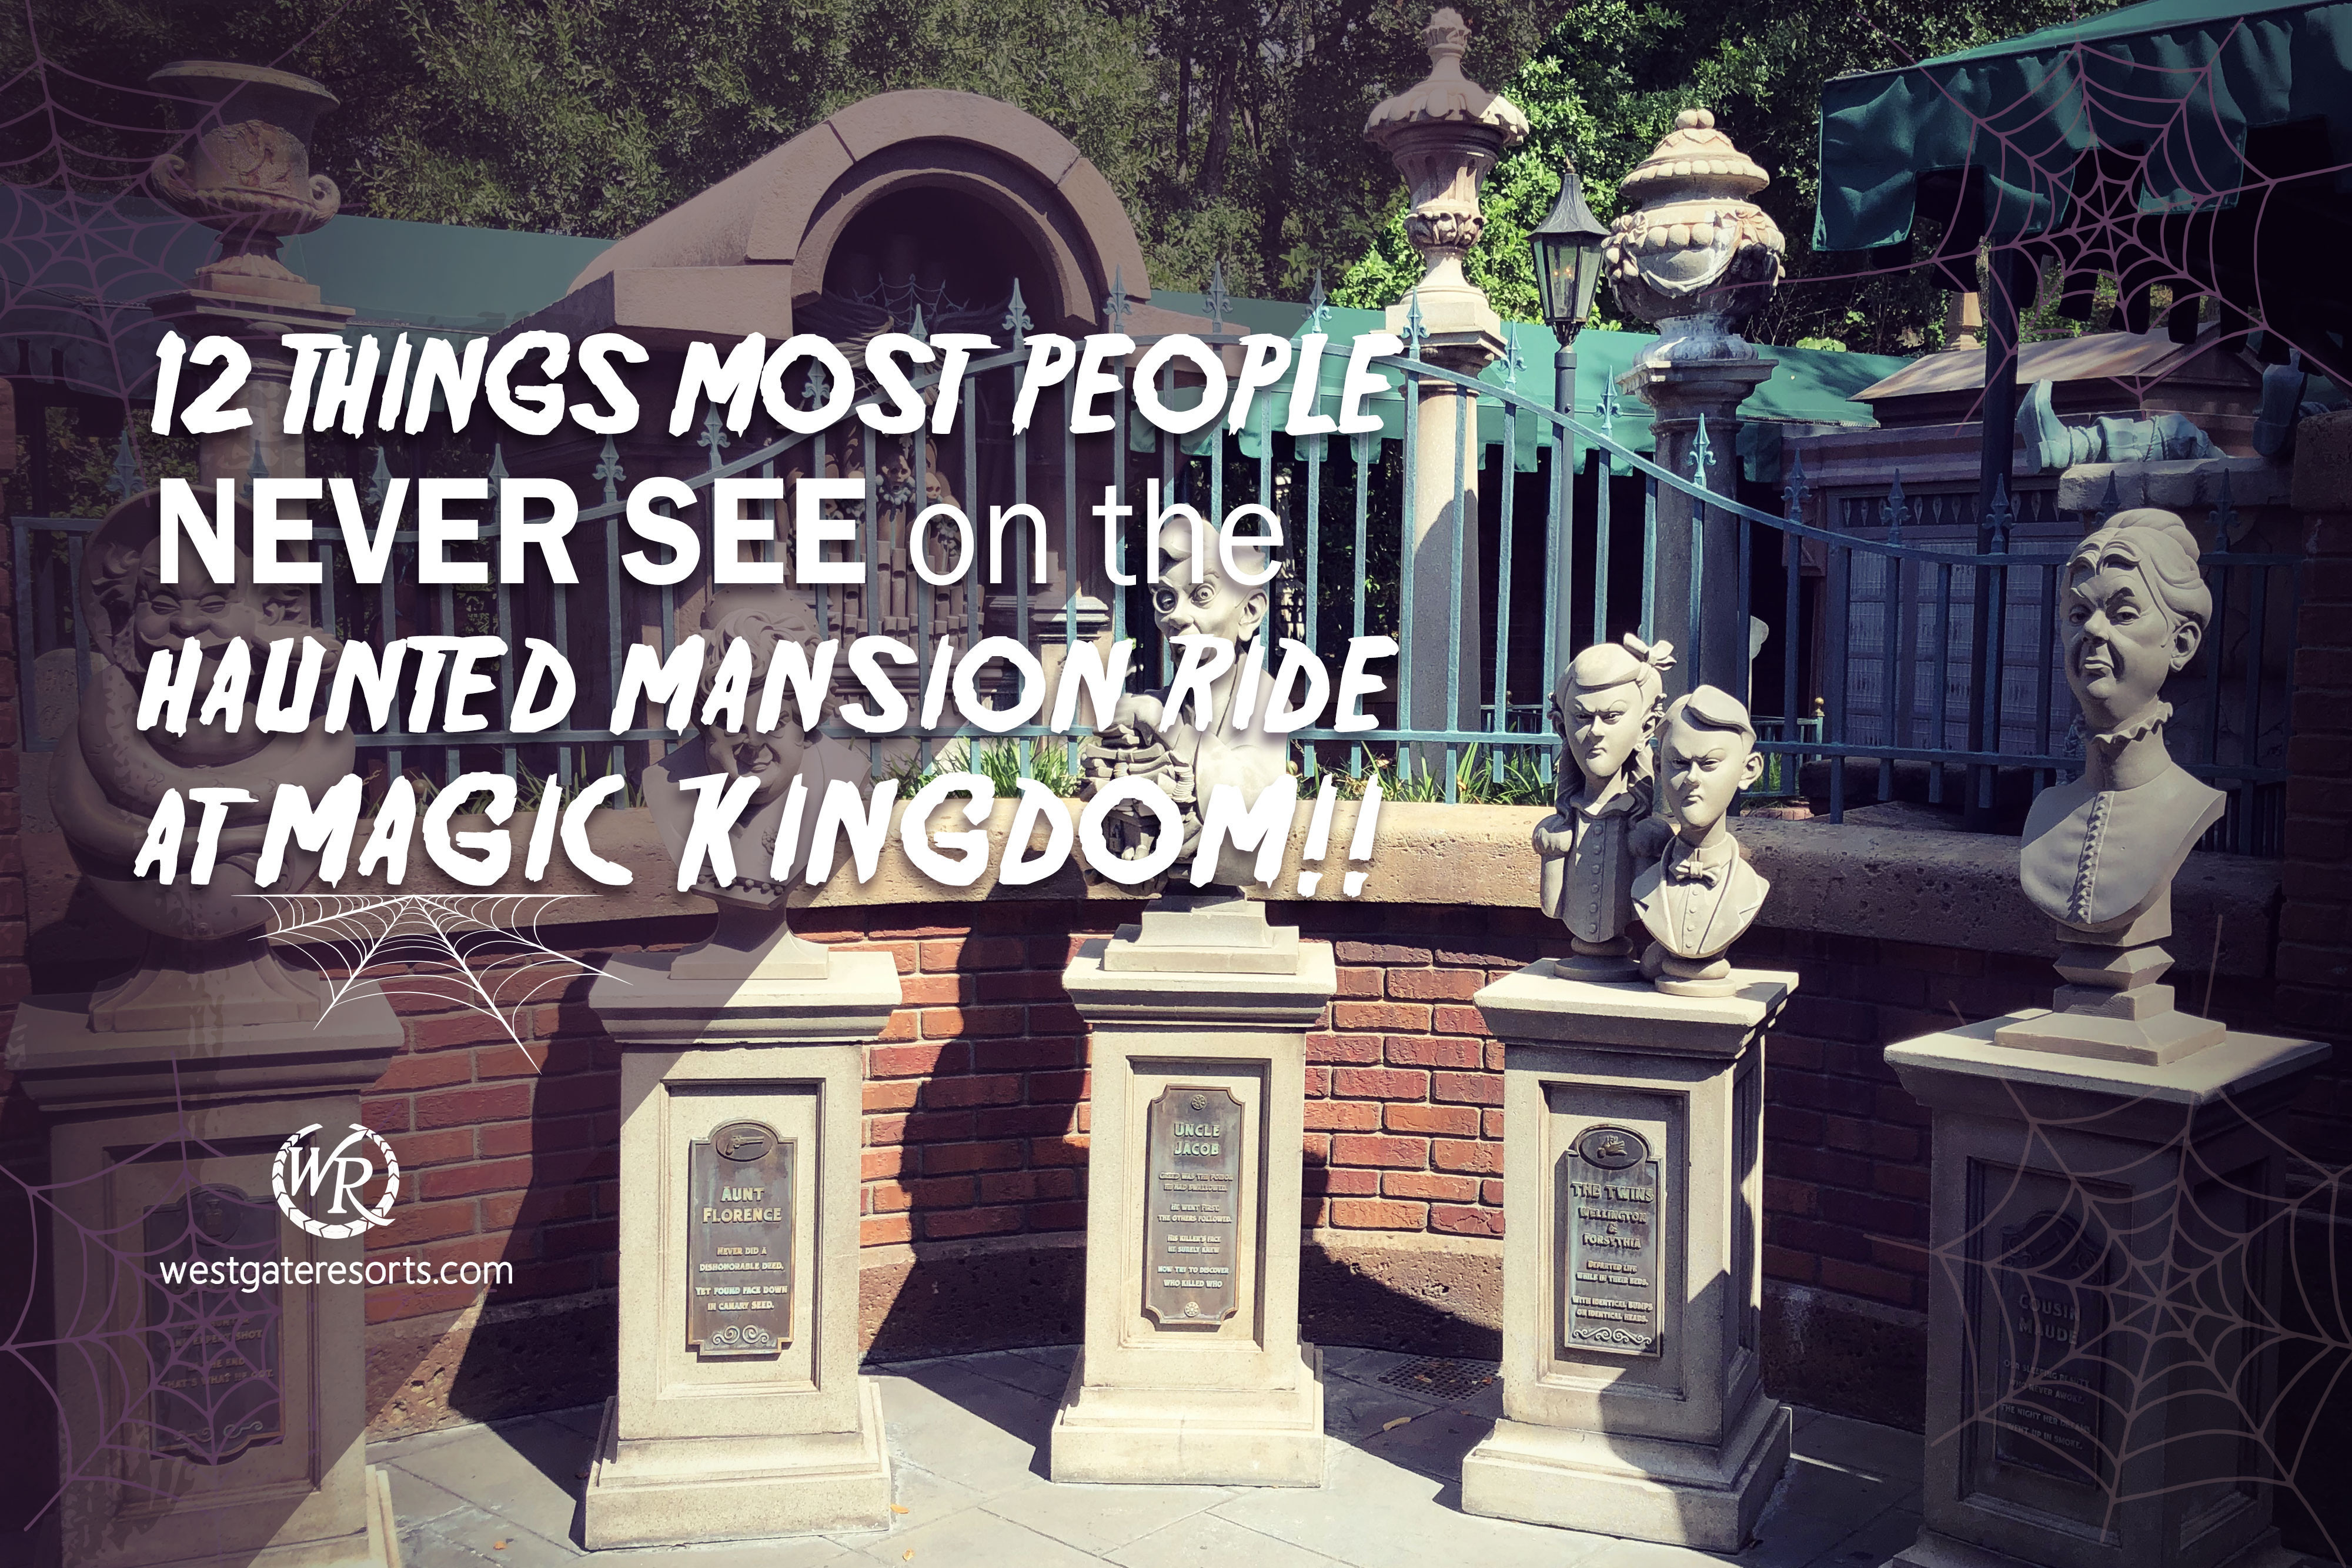 12 Things Most People Never See on The Haunted Mansion Ride at Magic Kingdom!